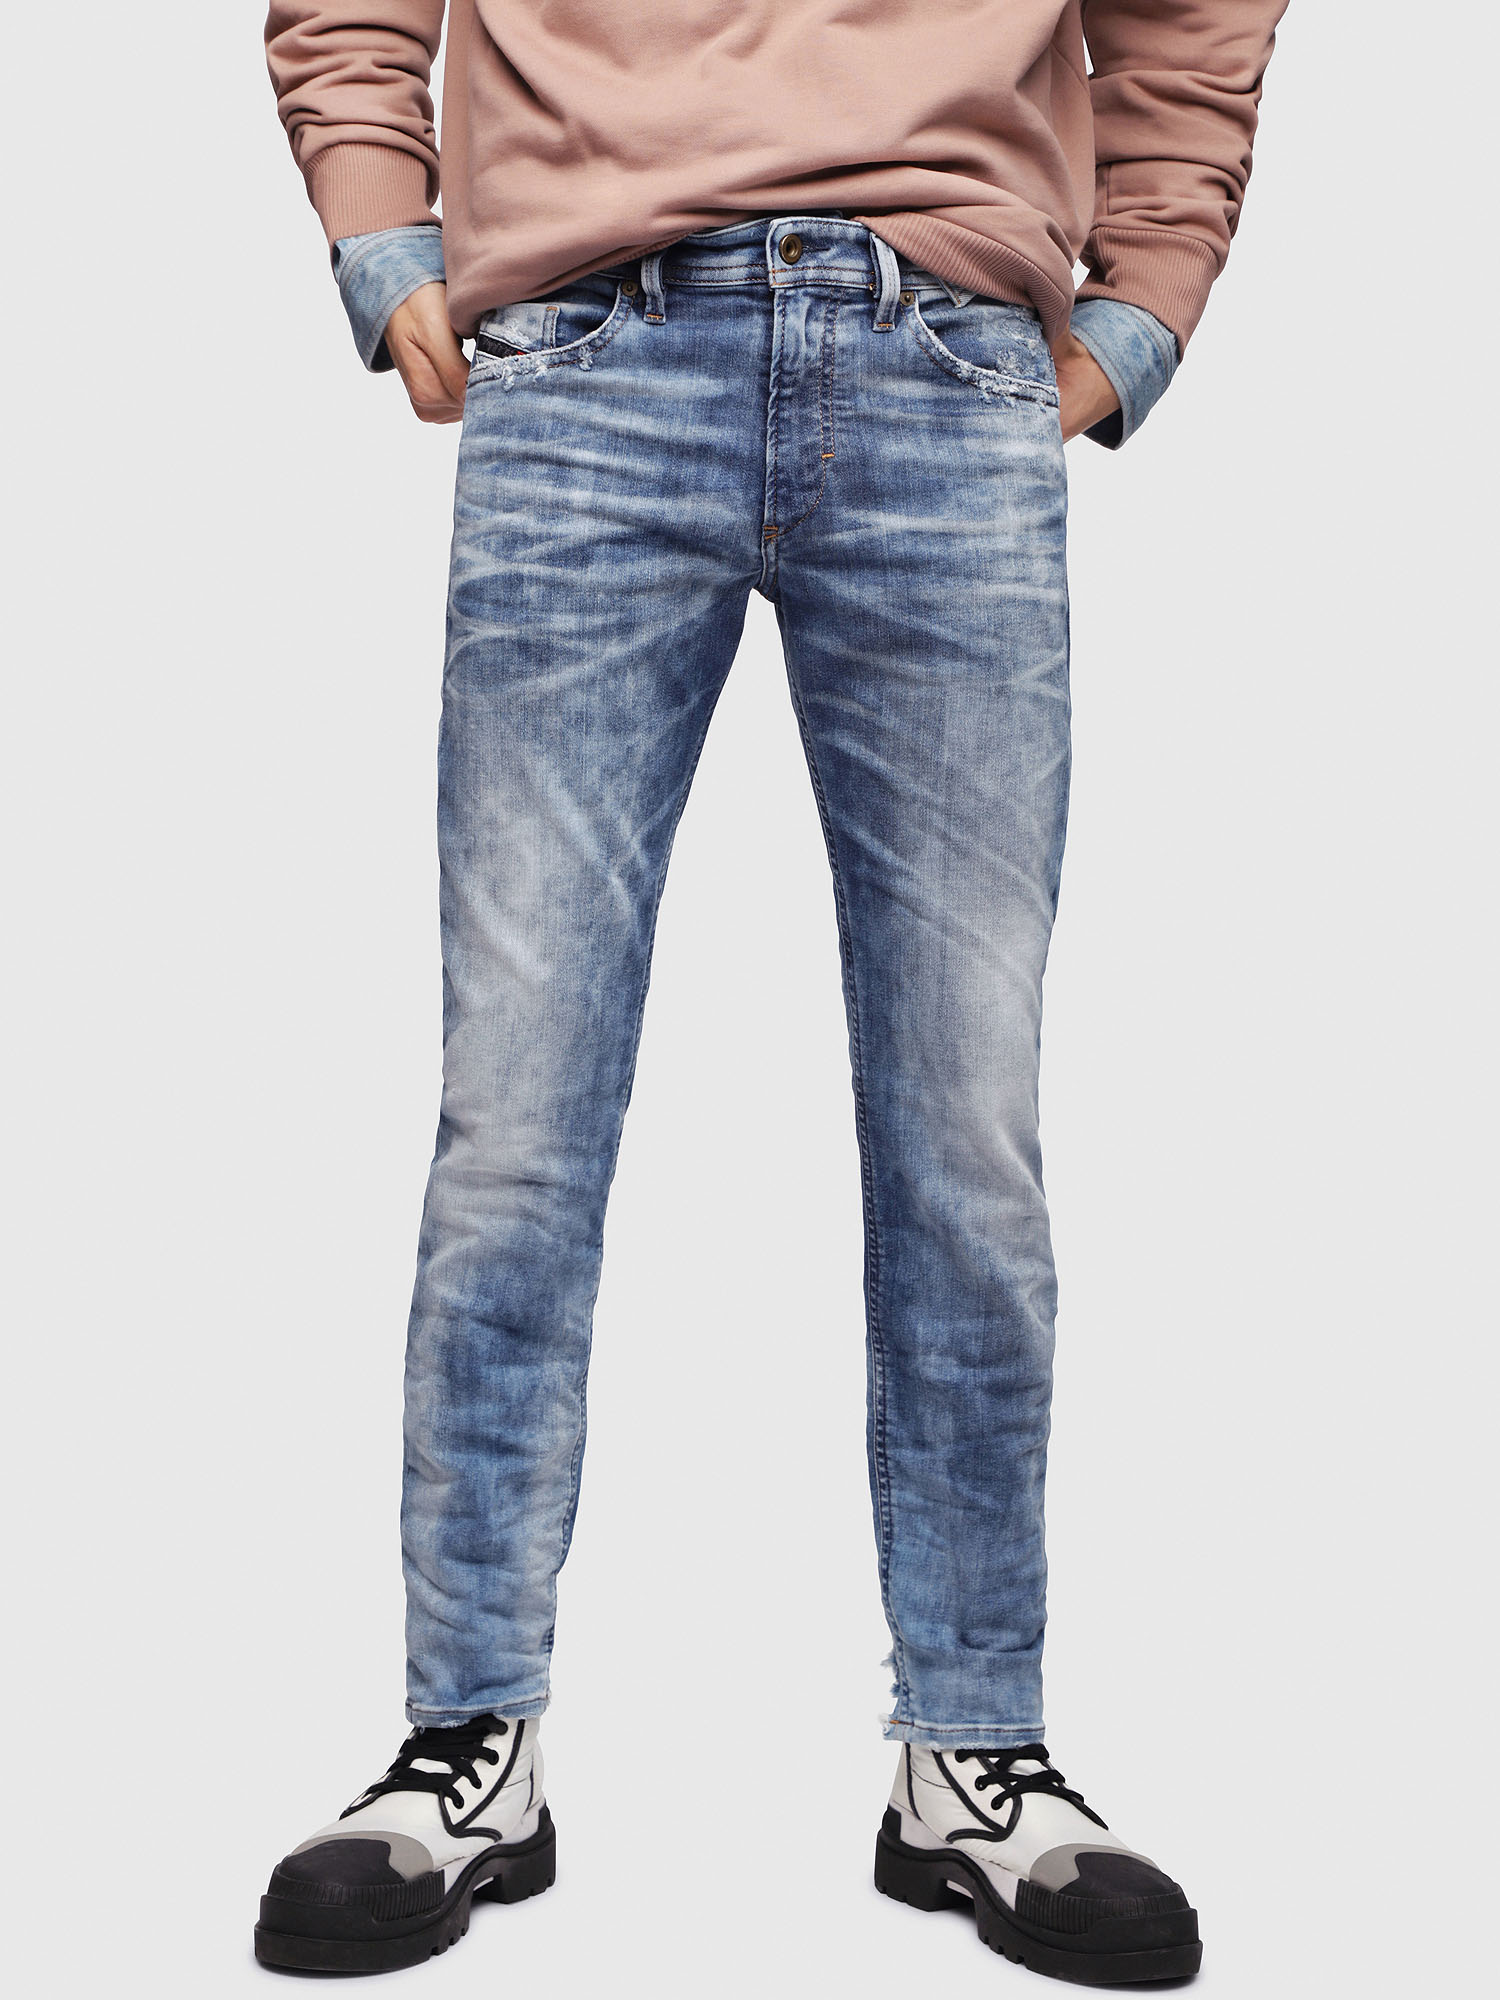 Diesel - Thommer JoggJeans 087AC,  - Jeans - Image 1